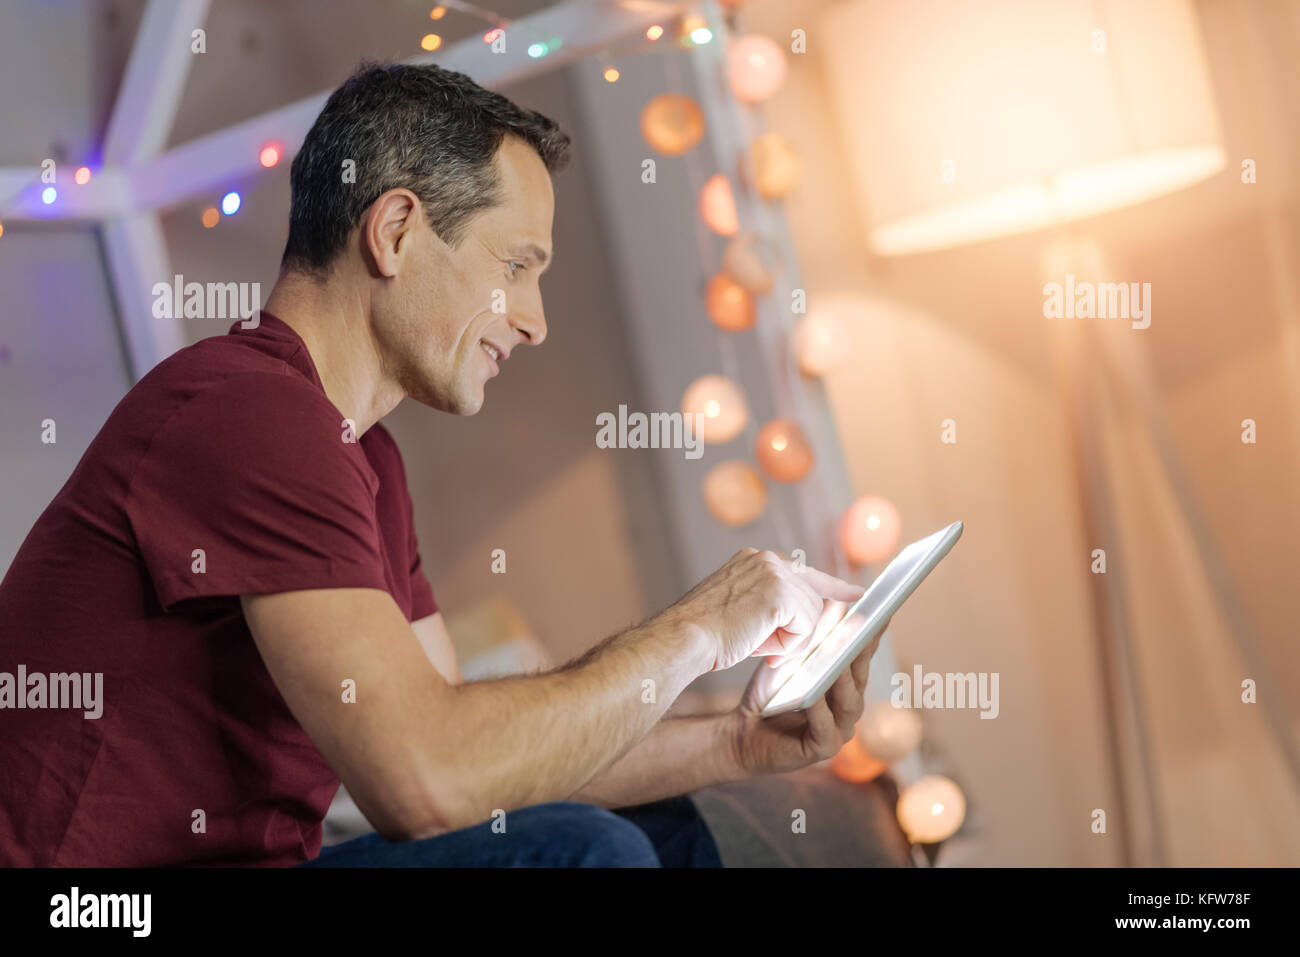 Attentive man playing with tablet - Stock Image